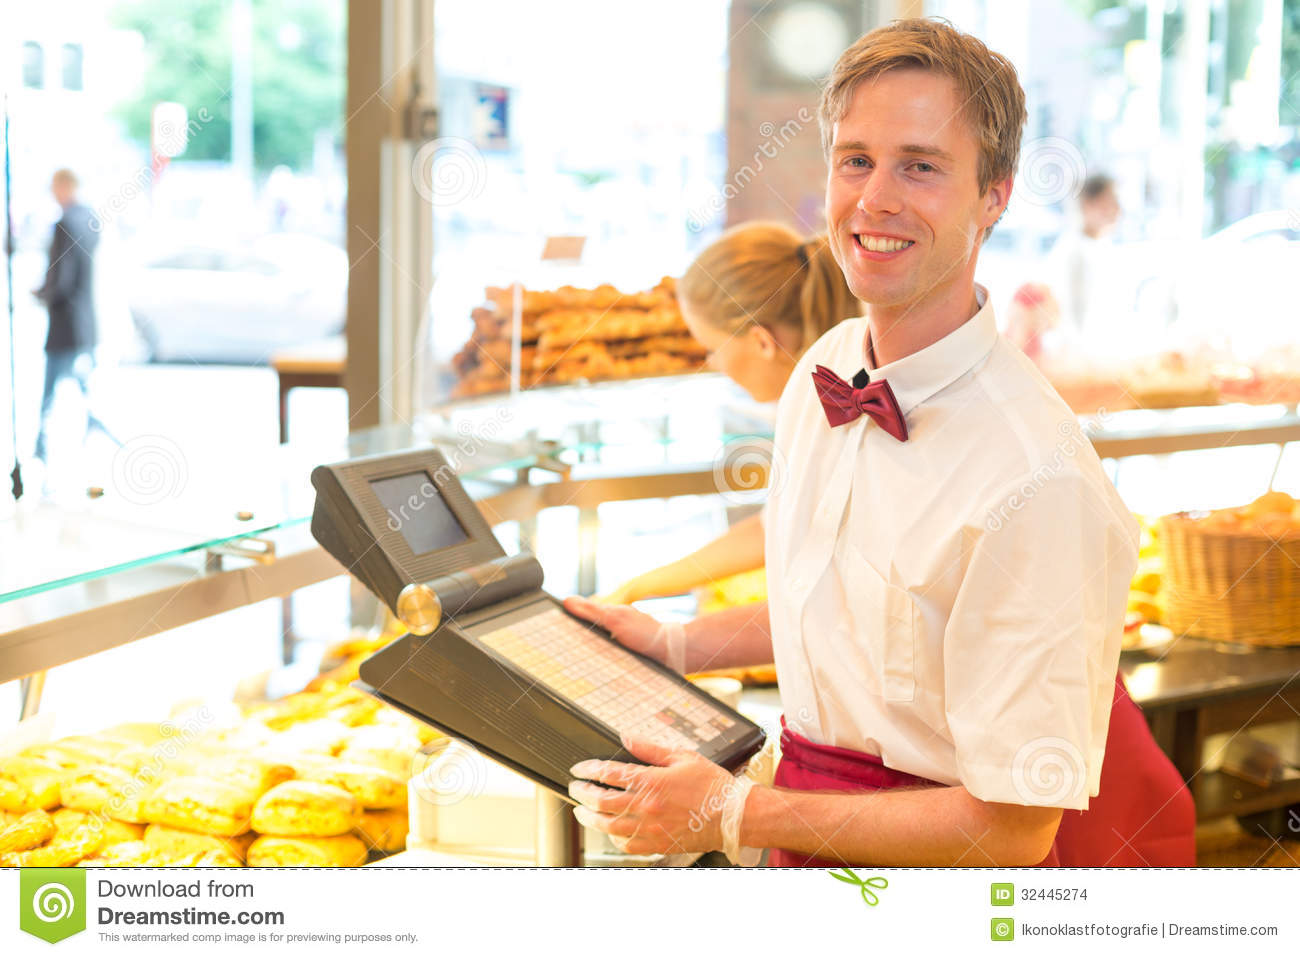 Cashier In Baker's Shop Posing With Cash Register Stock Images - Image ...